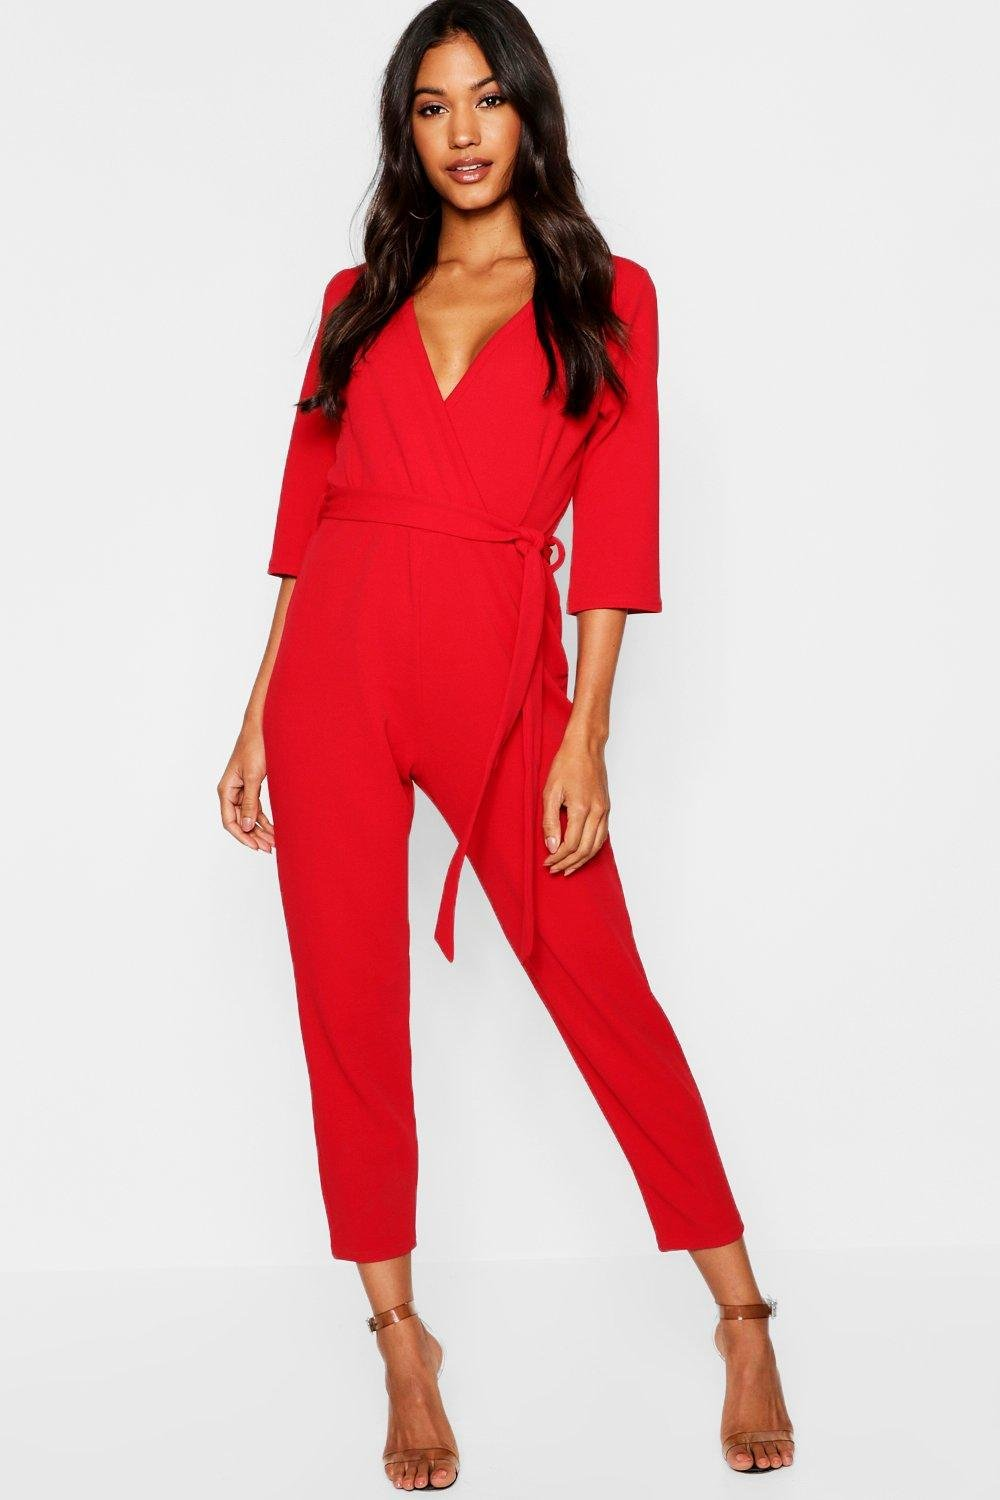 91313030fd4f Boohoo Wrap Jumpsuit in Red - Lyst